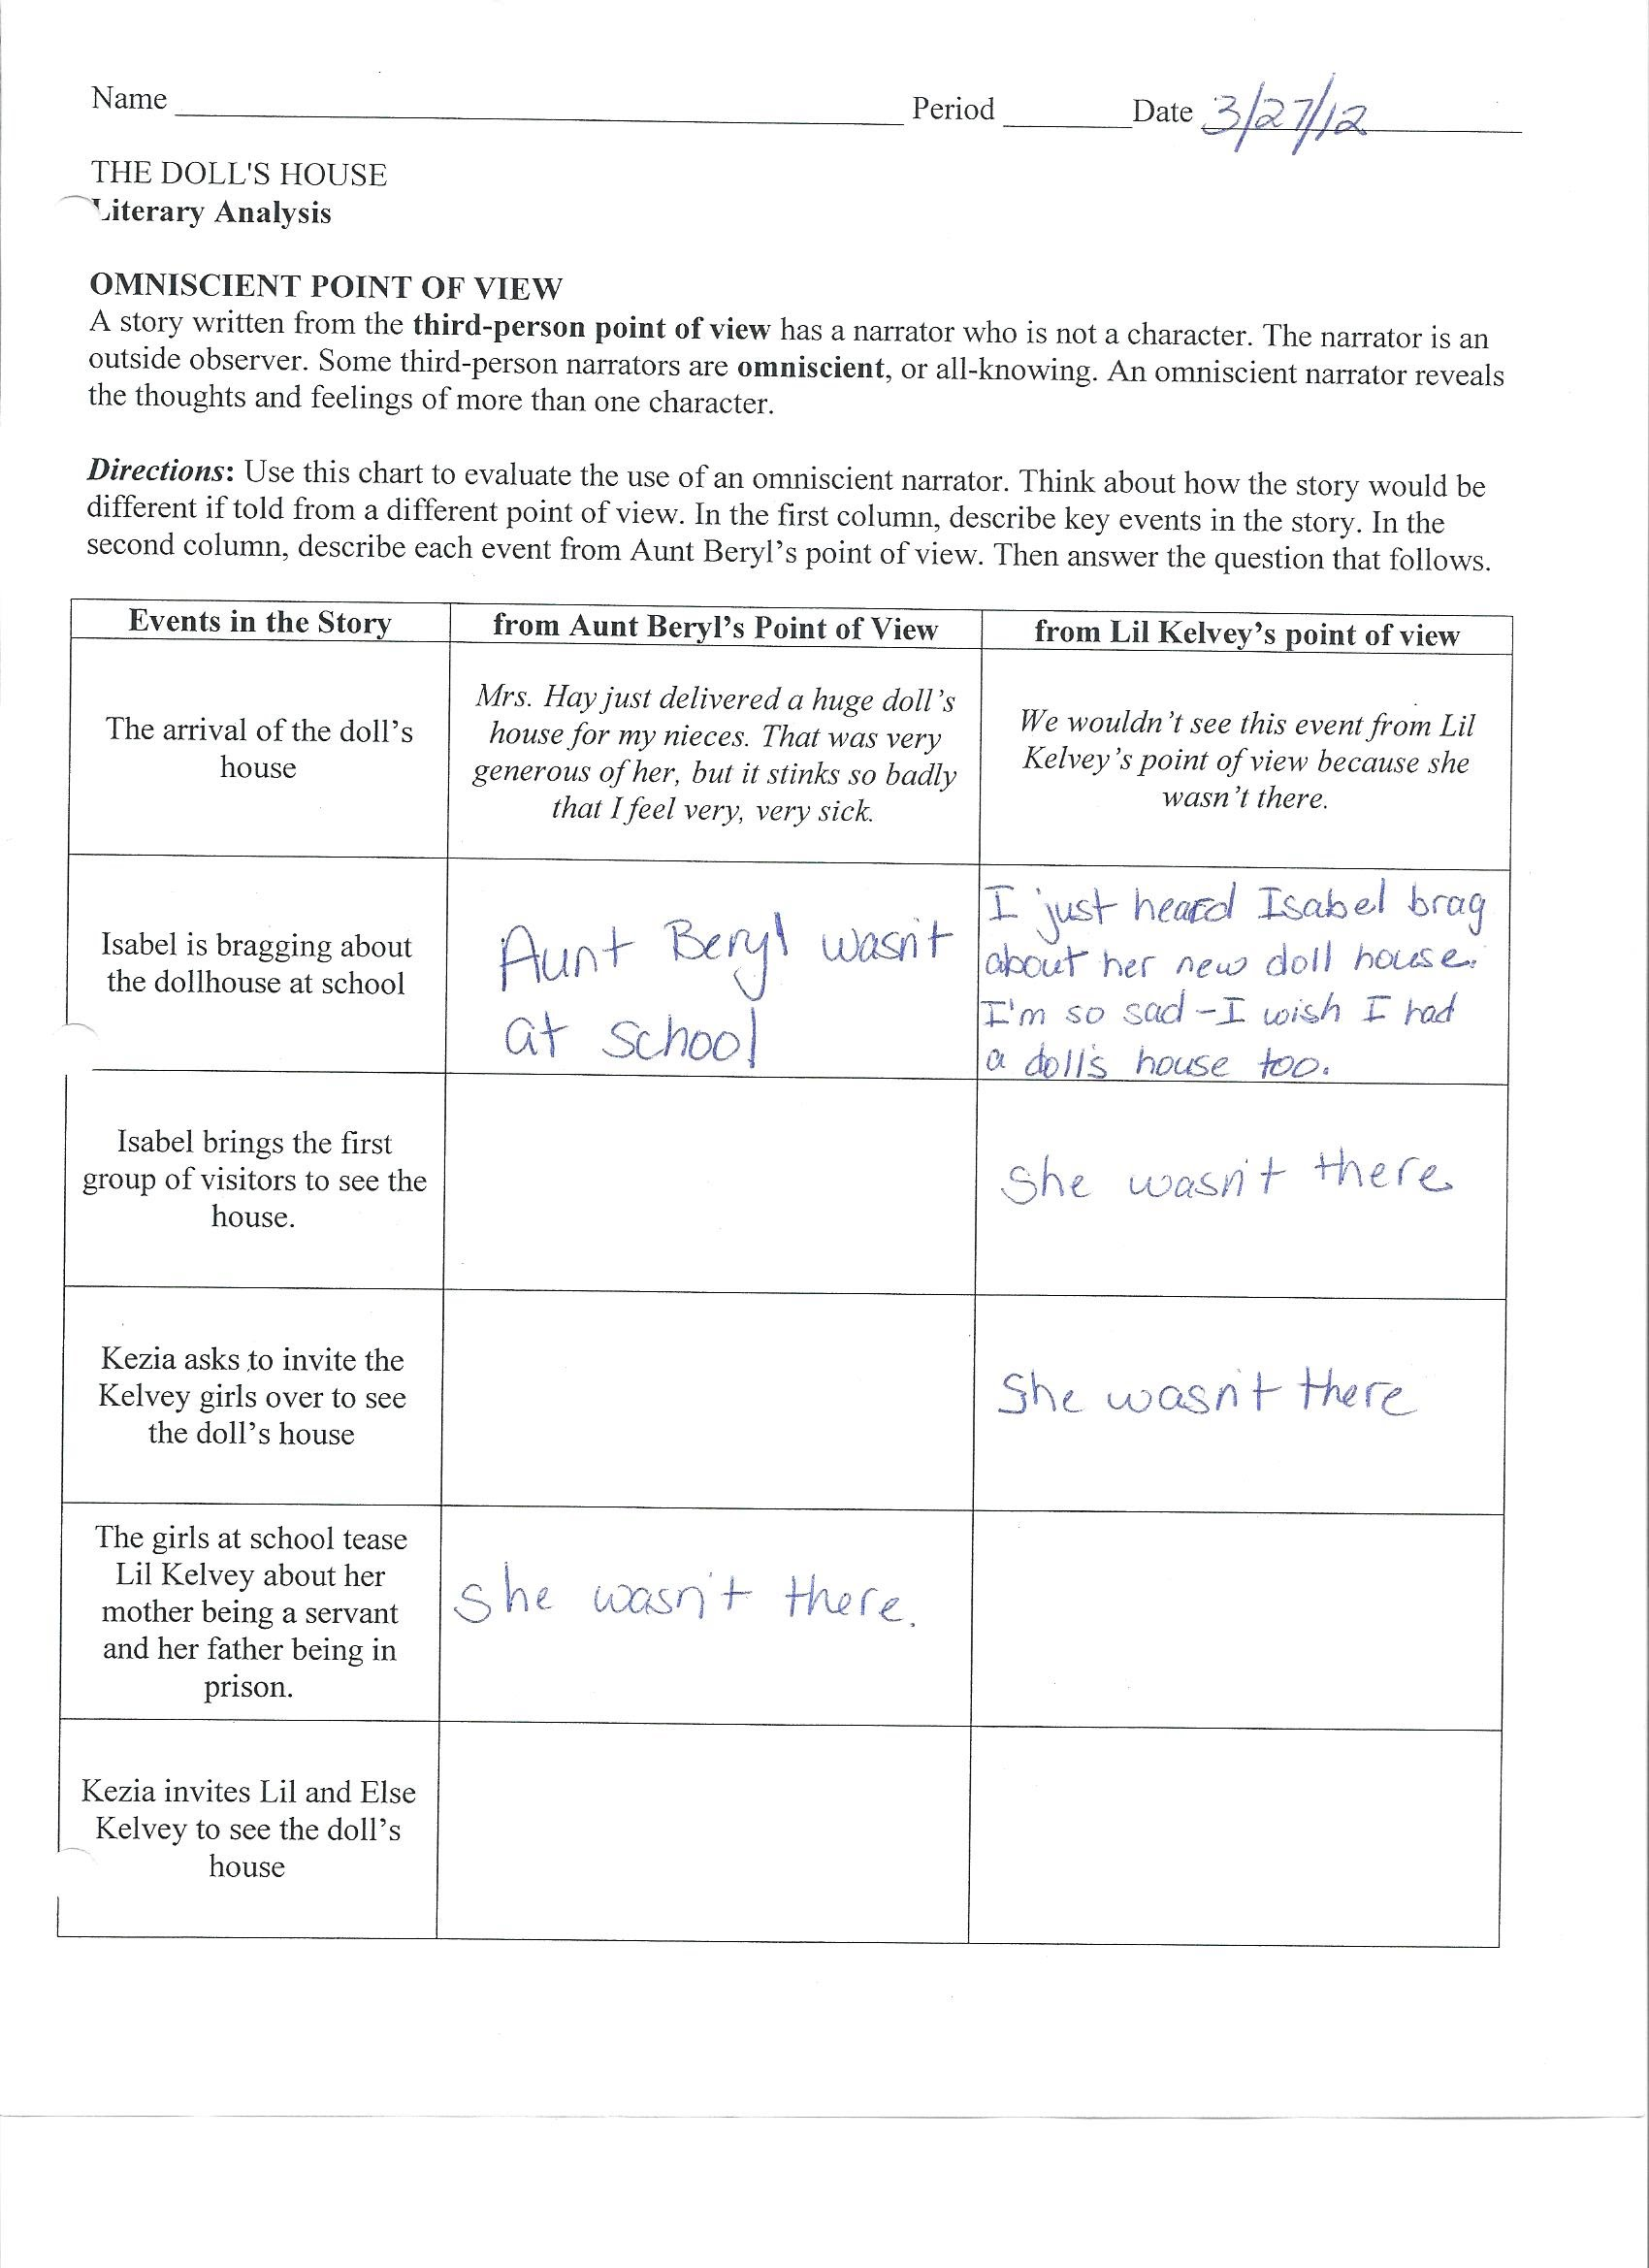 Free Worksheet Farewell To Manzanar Worksheets english 2 hhsresourceprogram attachments 03 27 12 literary analysis of the dolls housepg1 jpg